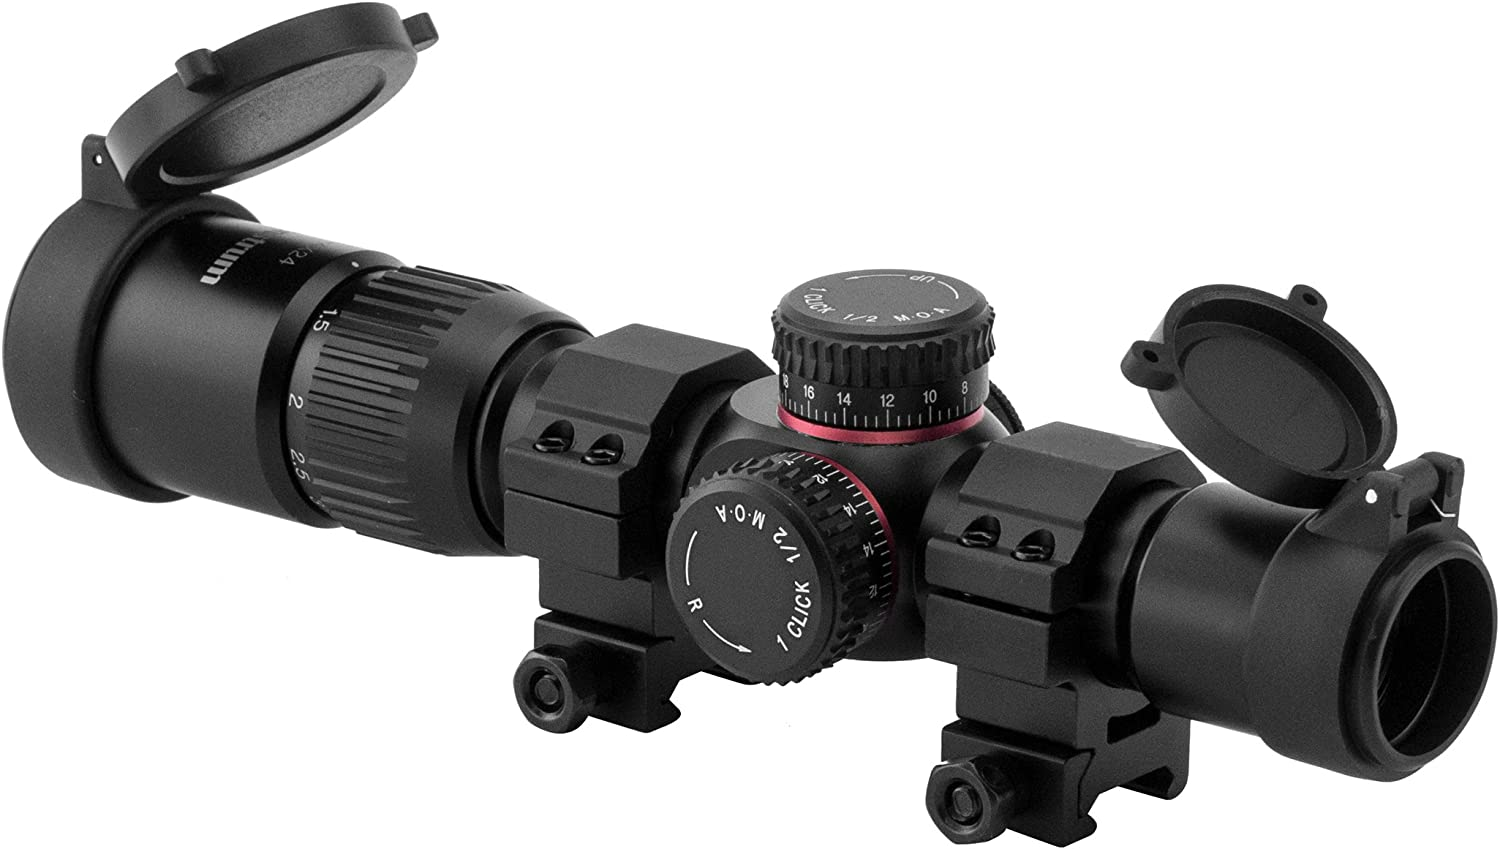 Monstrum G2 1-4×24 First Focal Plane FFP Rifle Scope with Illuminated BDC Reticle